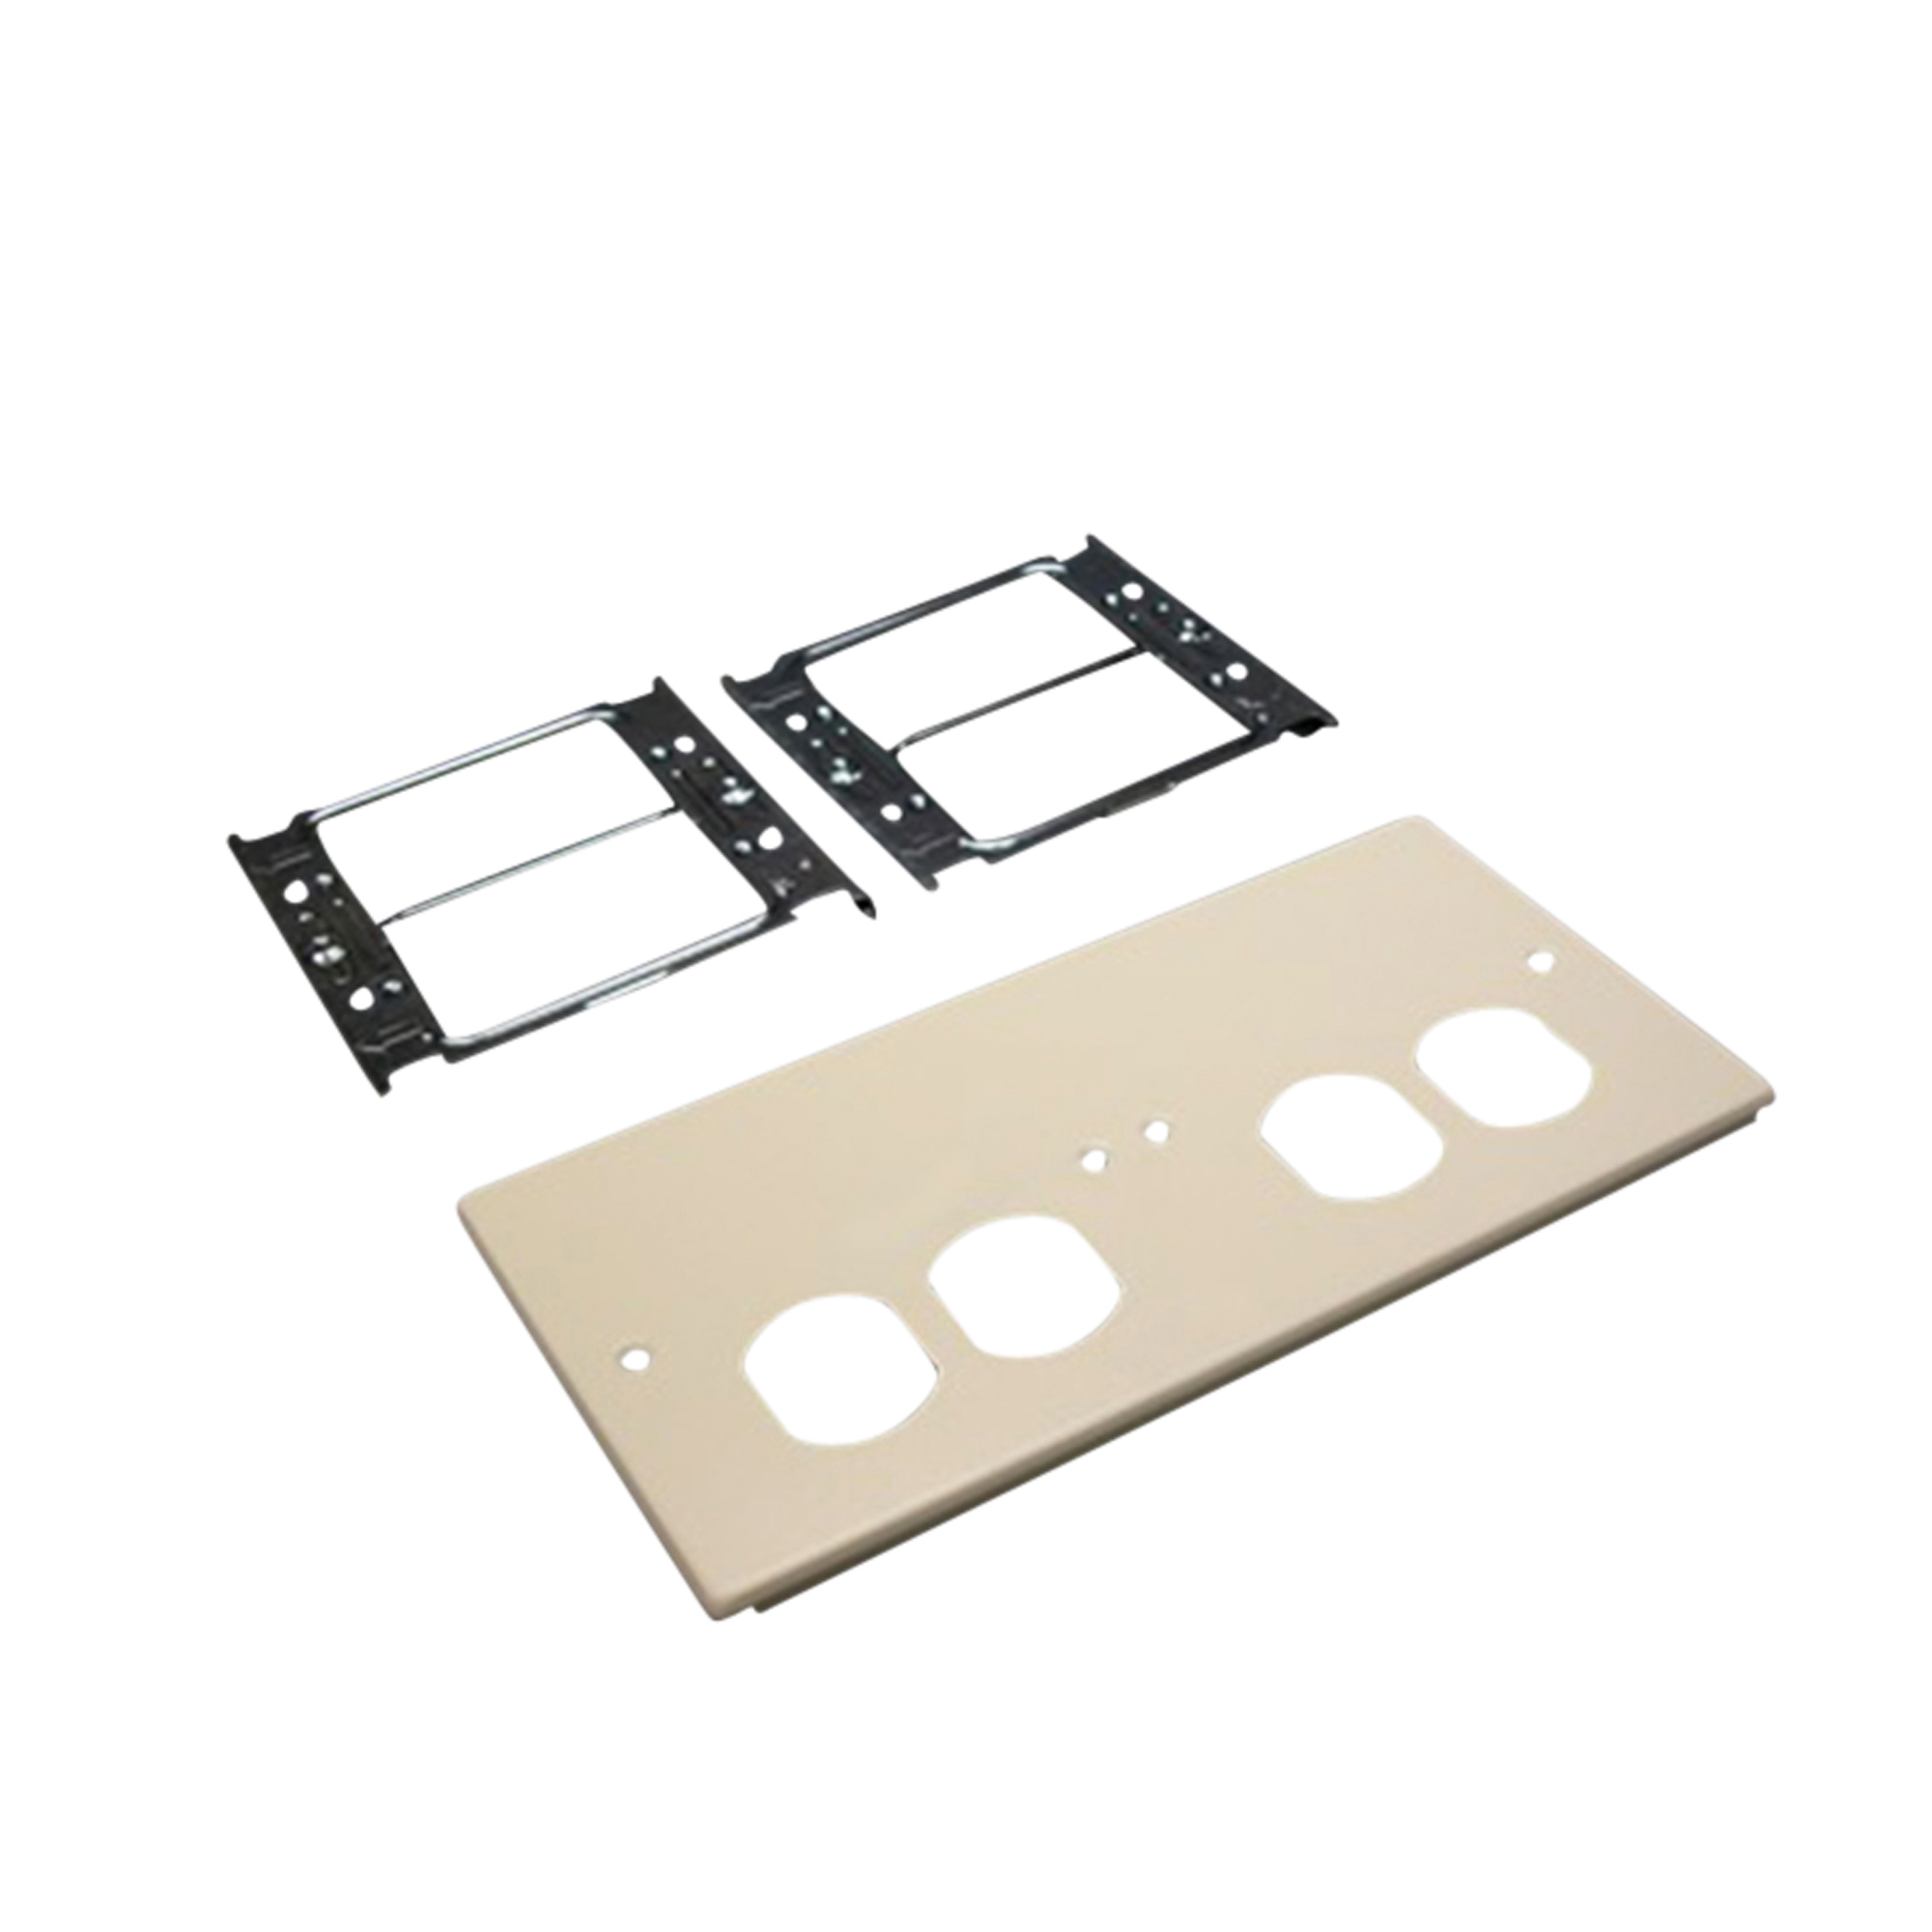 WIREMOLD LEGRAND G4047-2BBXX 4-GANG OVERLAPPING COVER PLATE, 4000 ...